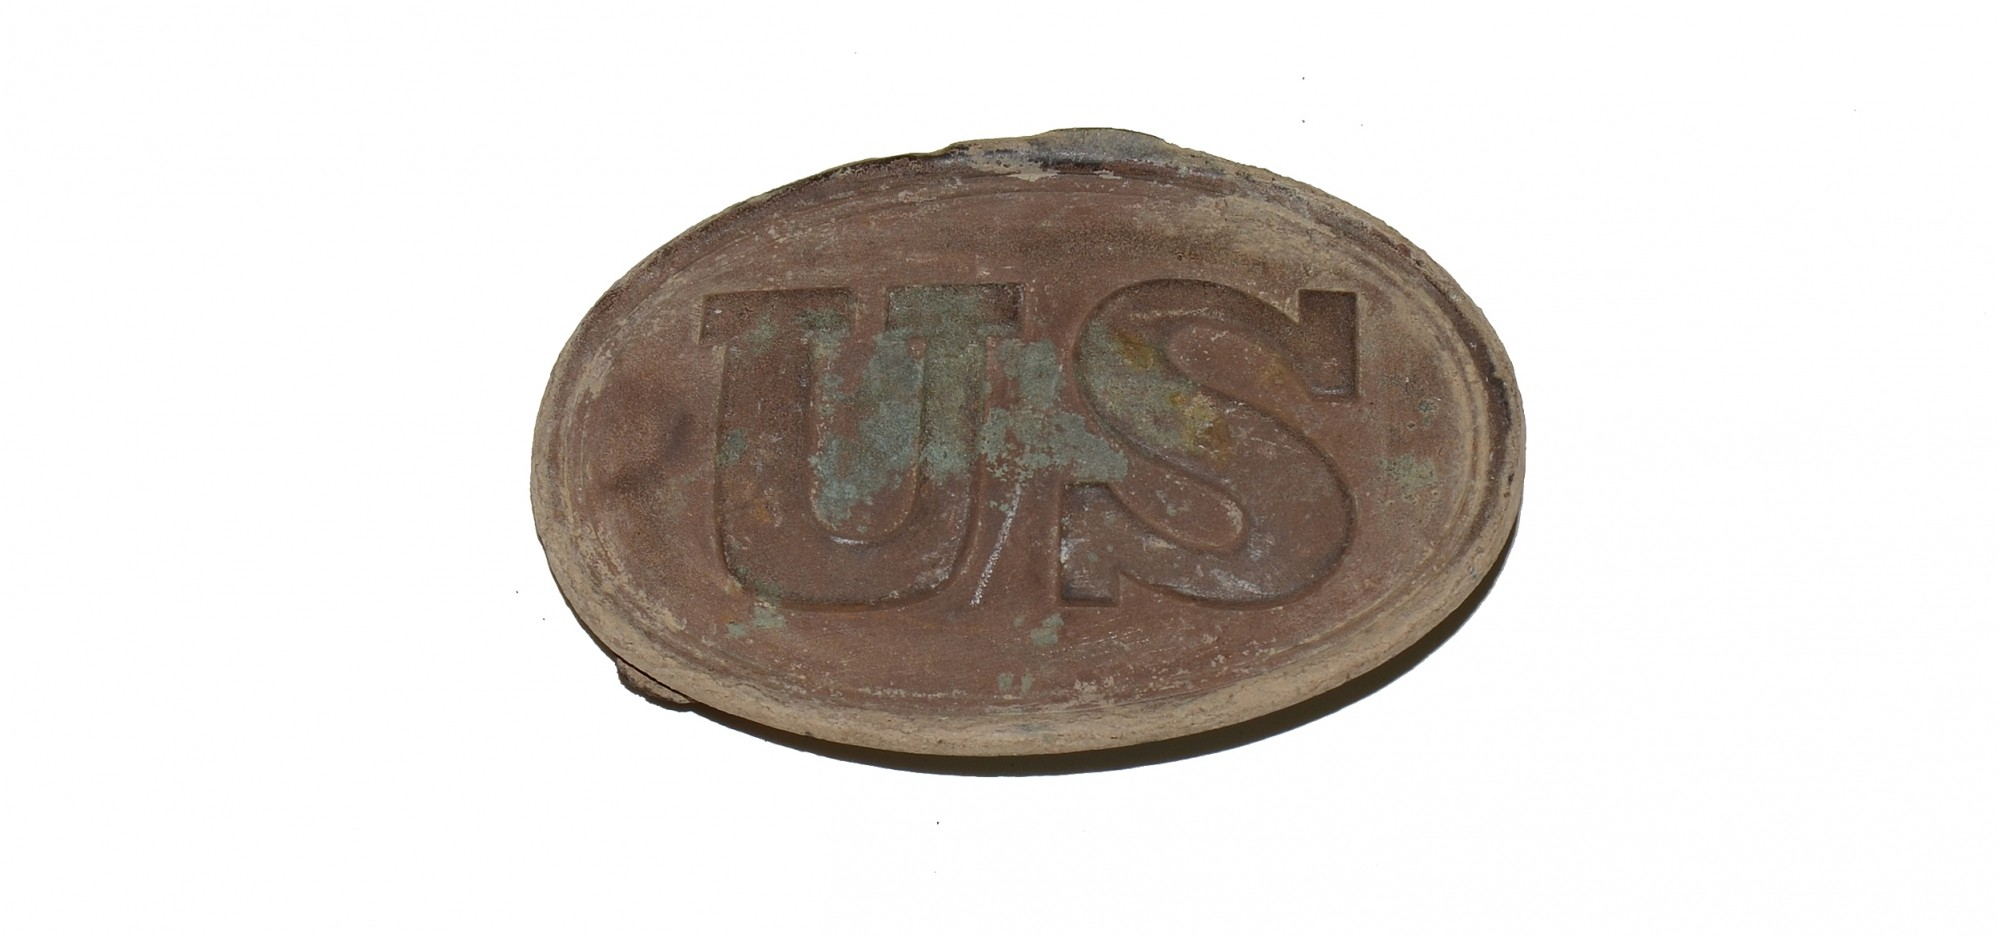 PATTERN 1839 US BELT PLATE FOUND IN 2nd & 5th CORPS SITE, THE WILDERNESS - BILL GAVIN COLLECTION